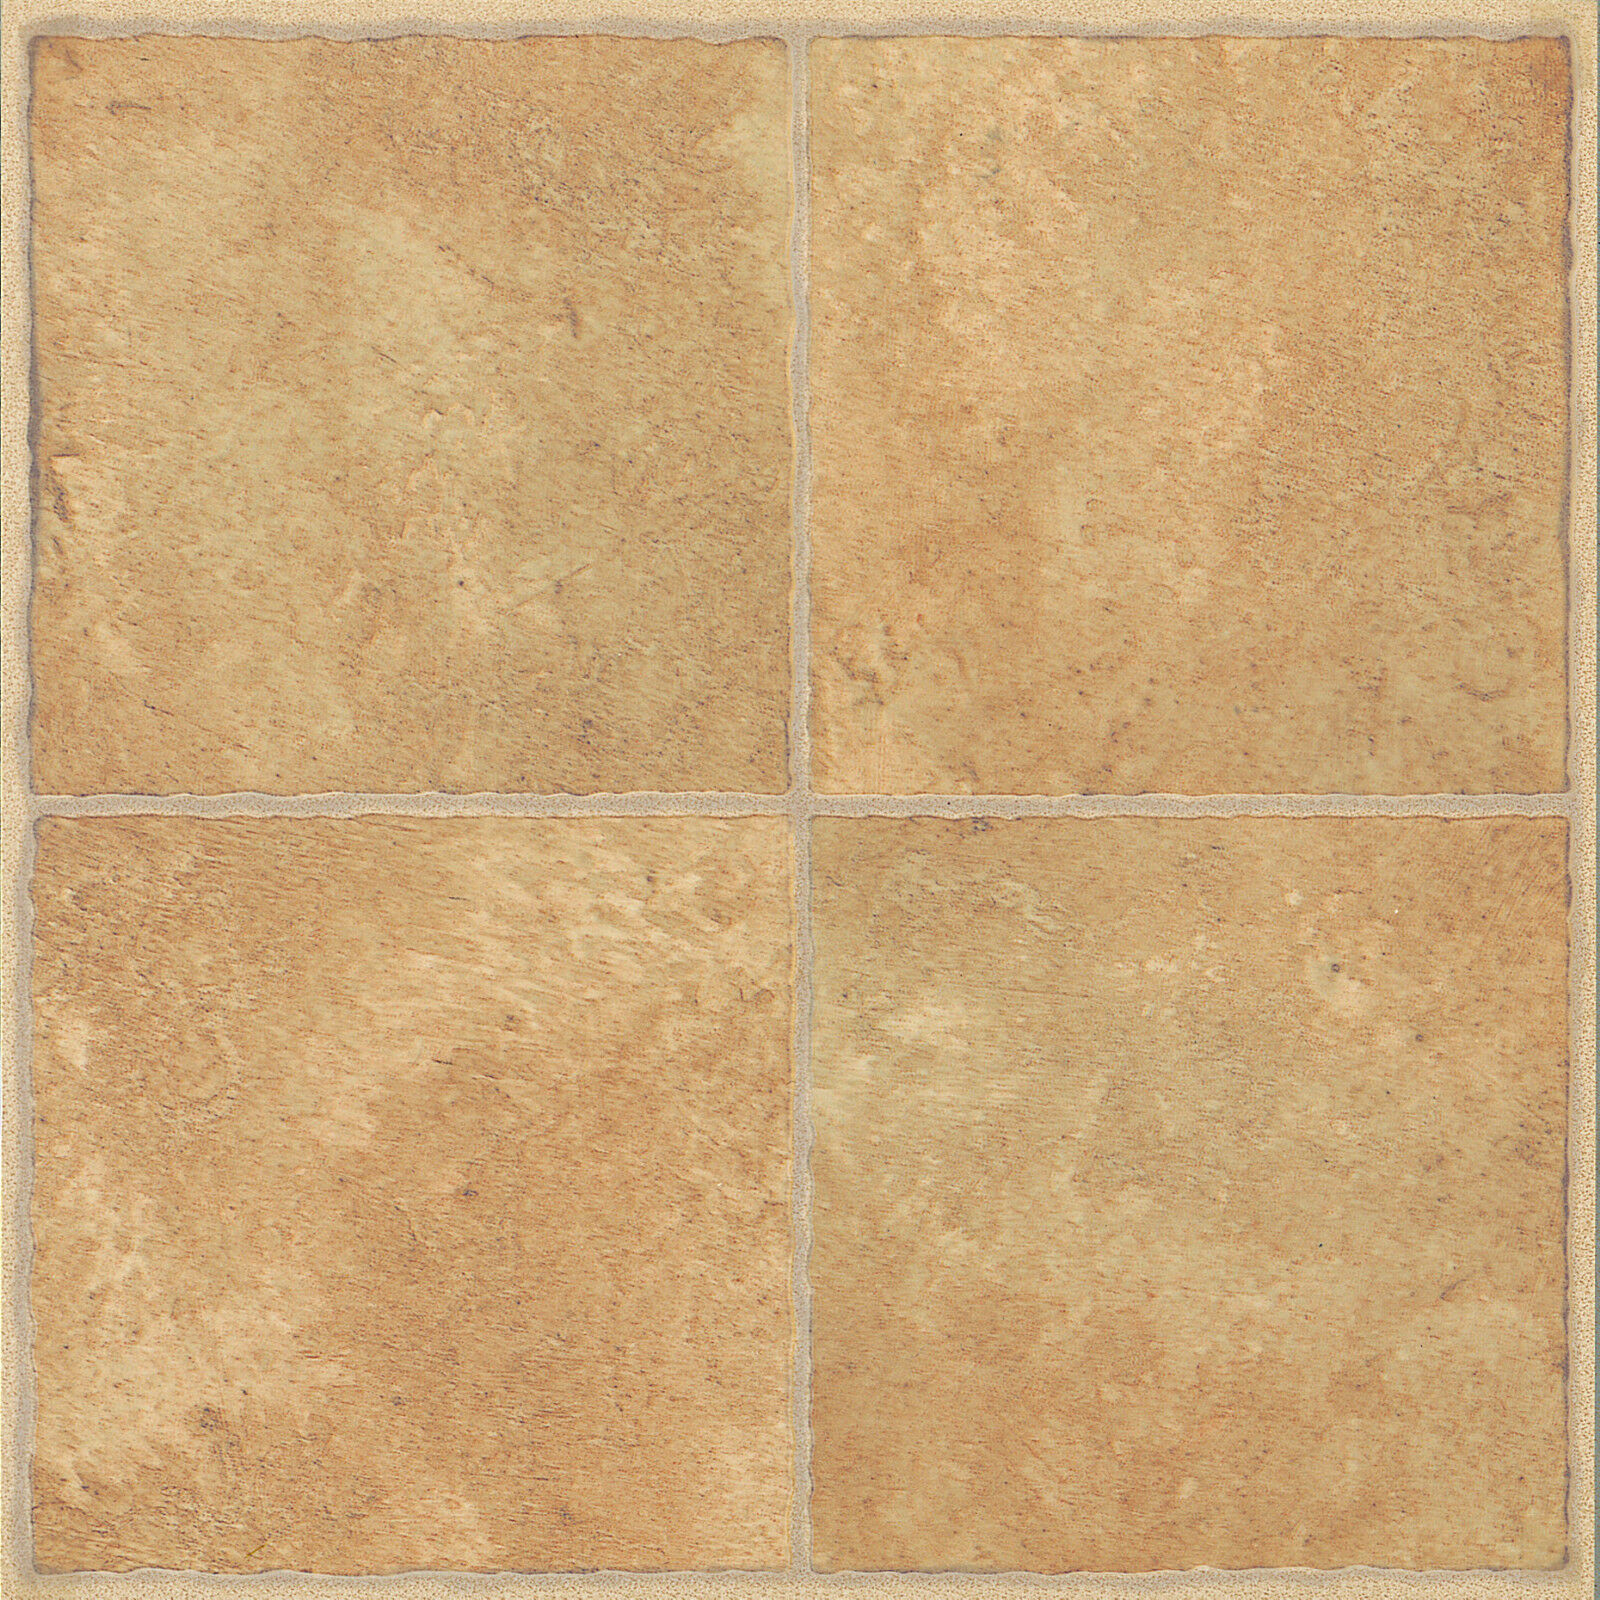 60 X Vinyl Floor Tiles Self Adhesive Bathroom Kitchen Beige Traditional 186 Eur 19 45